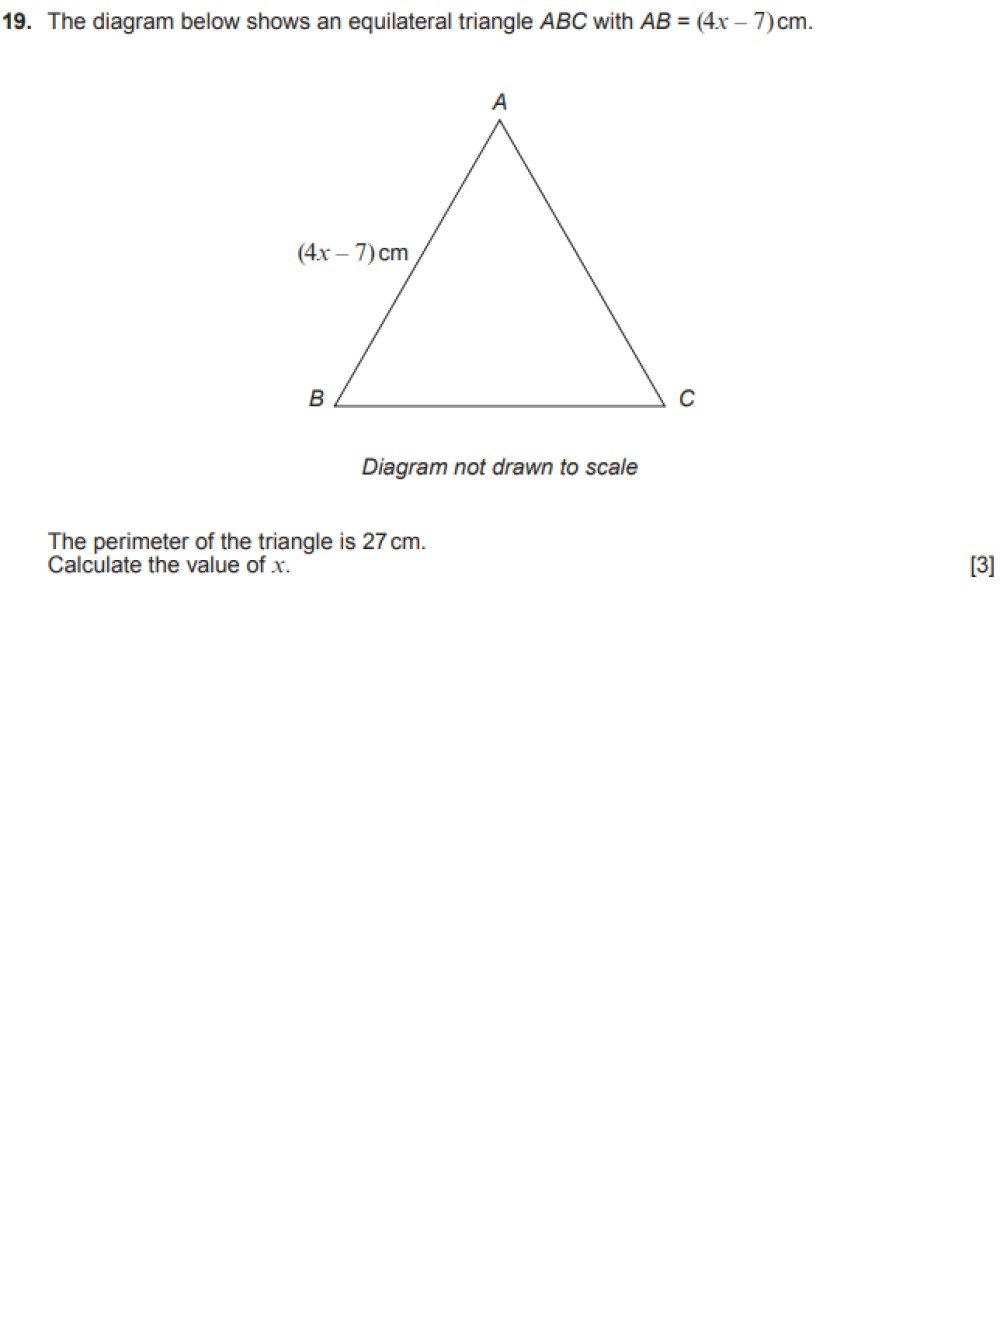 GCSE past paper question